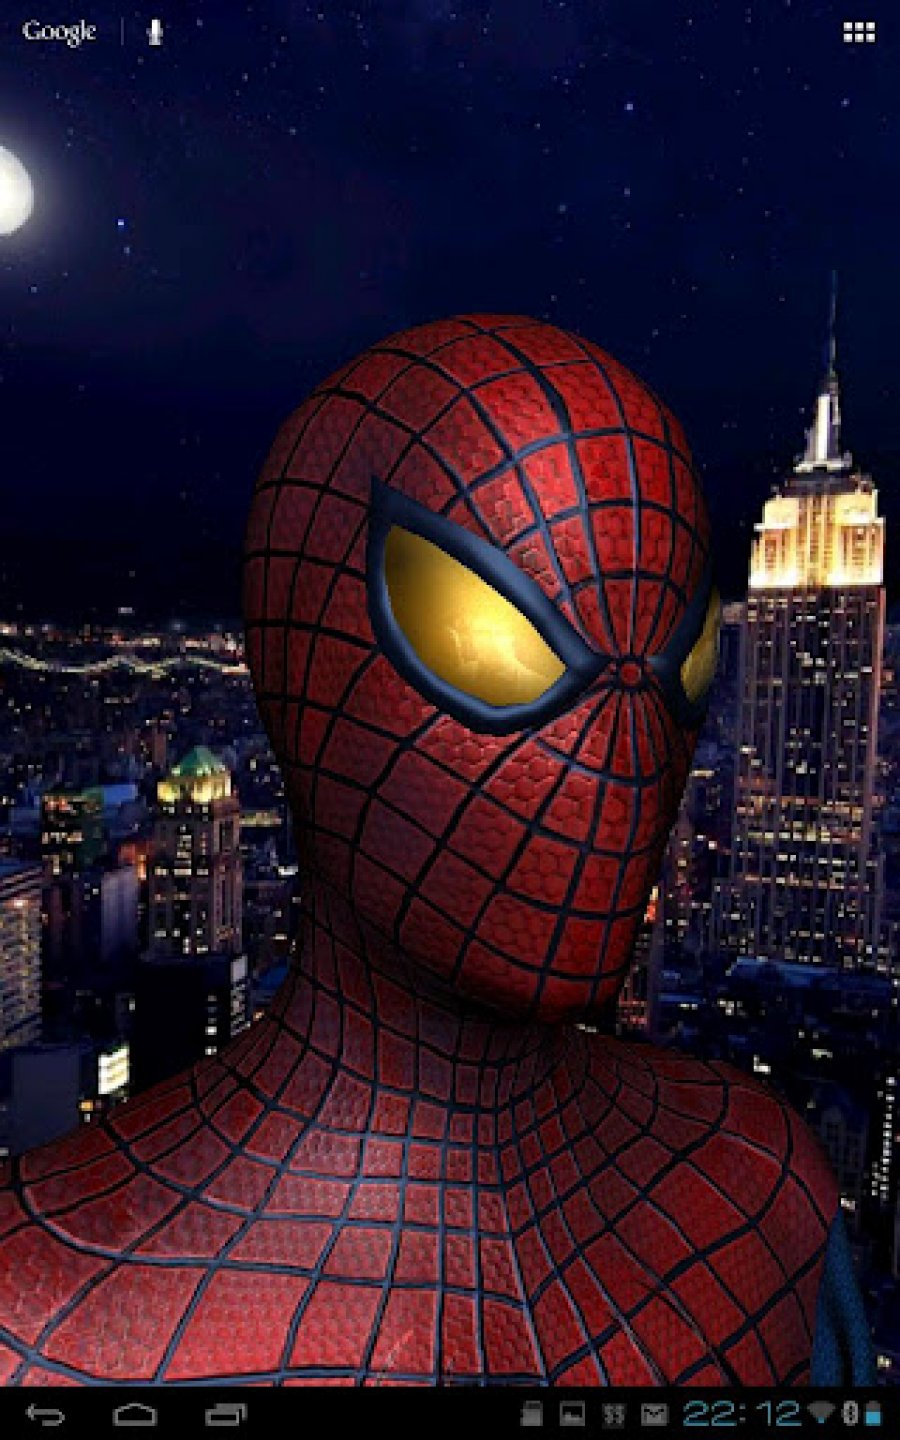 Free Hd Live Wallpapers For Android Download Amazing Spiderman Live Wallpaper Gallery